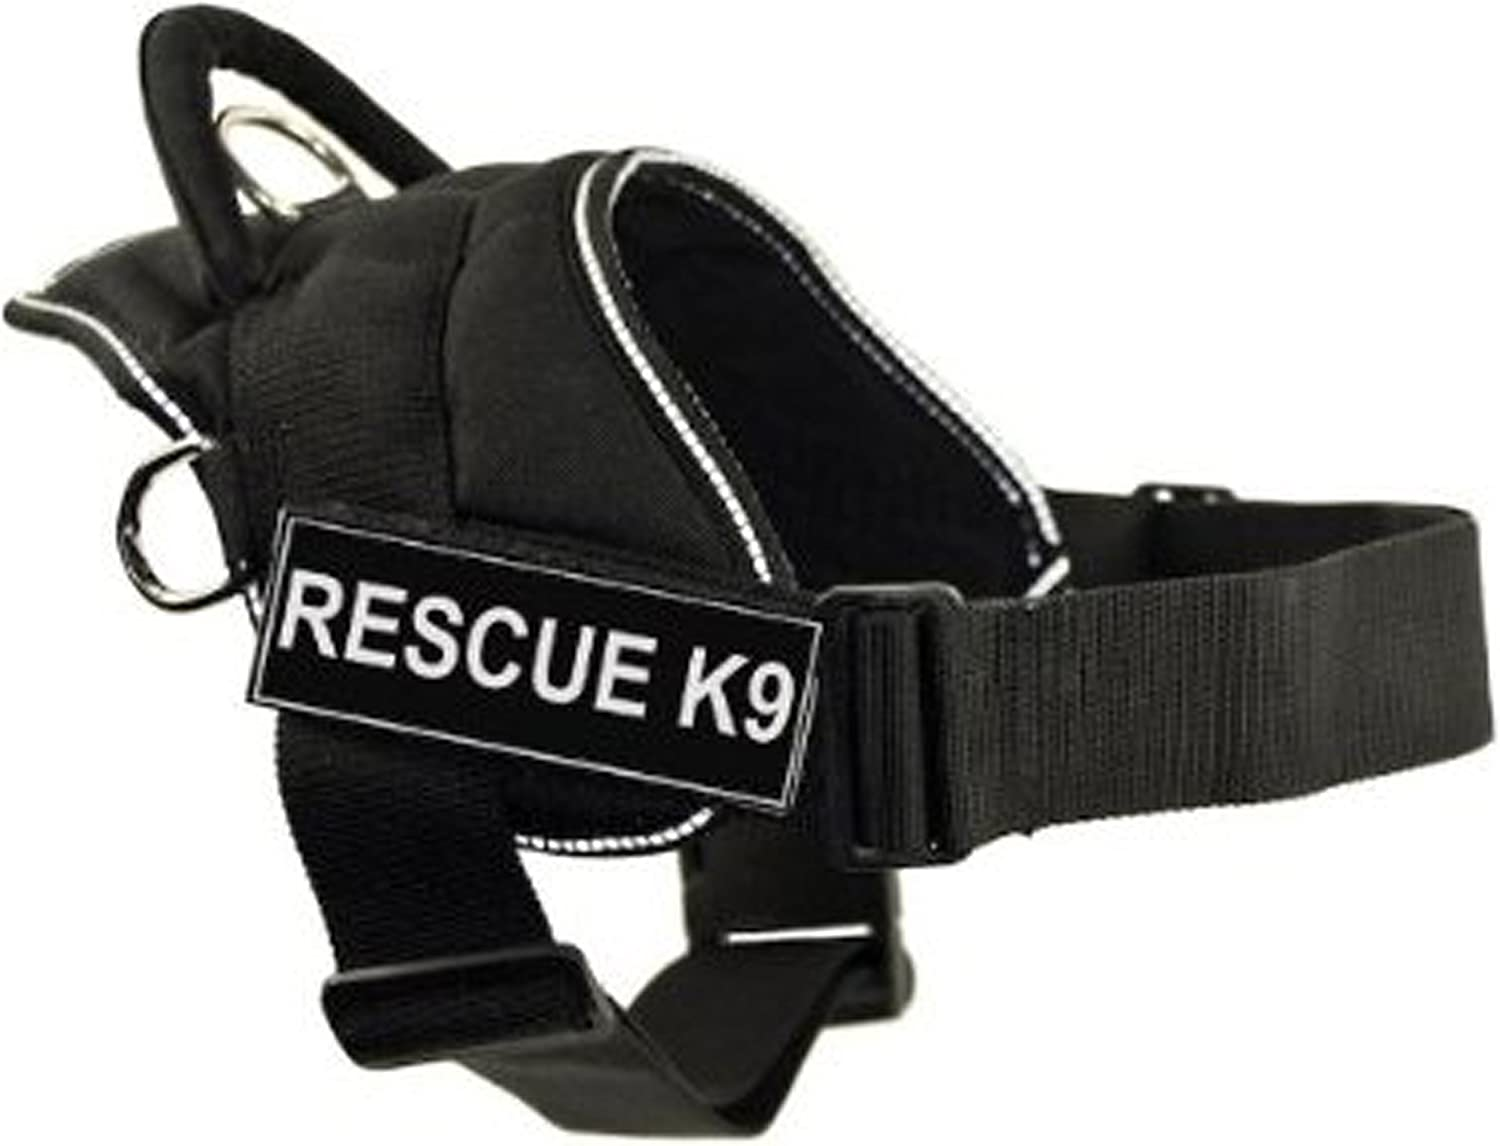 Dean & Tyler DT Fun Harness, Rescue K9, Black With